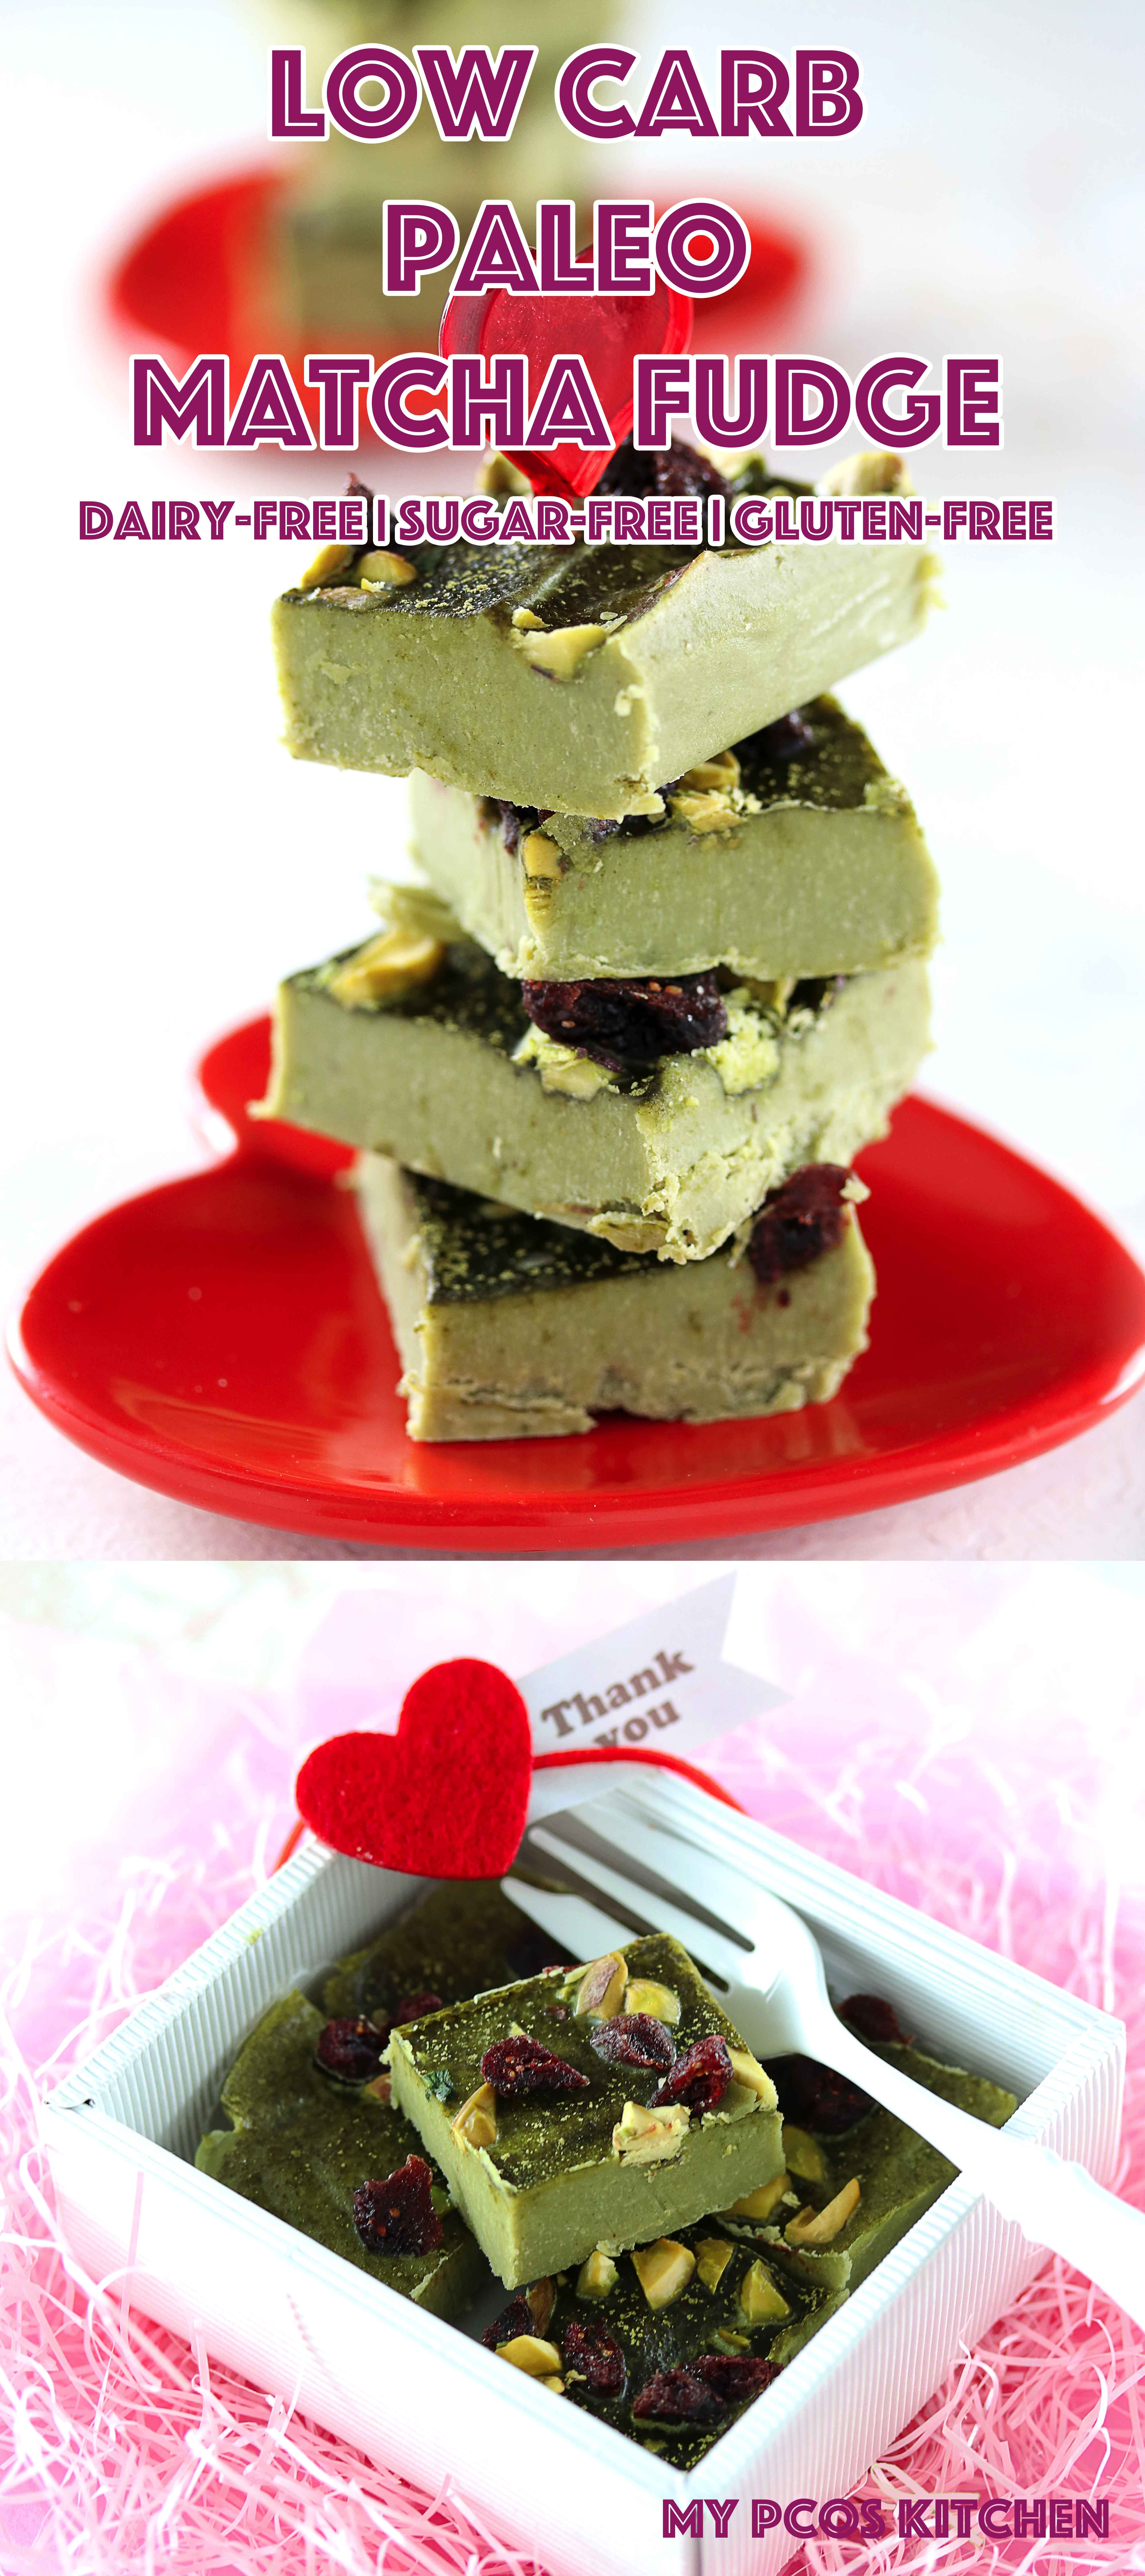 Low Carb Paleo Green Tea Matcha Fudge - My PCOS Kitchen - Great fat bombs that are completely dairy-free, sugar-free and gluten-free! #lowcarb #paleo #valentinesday #matcha